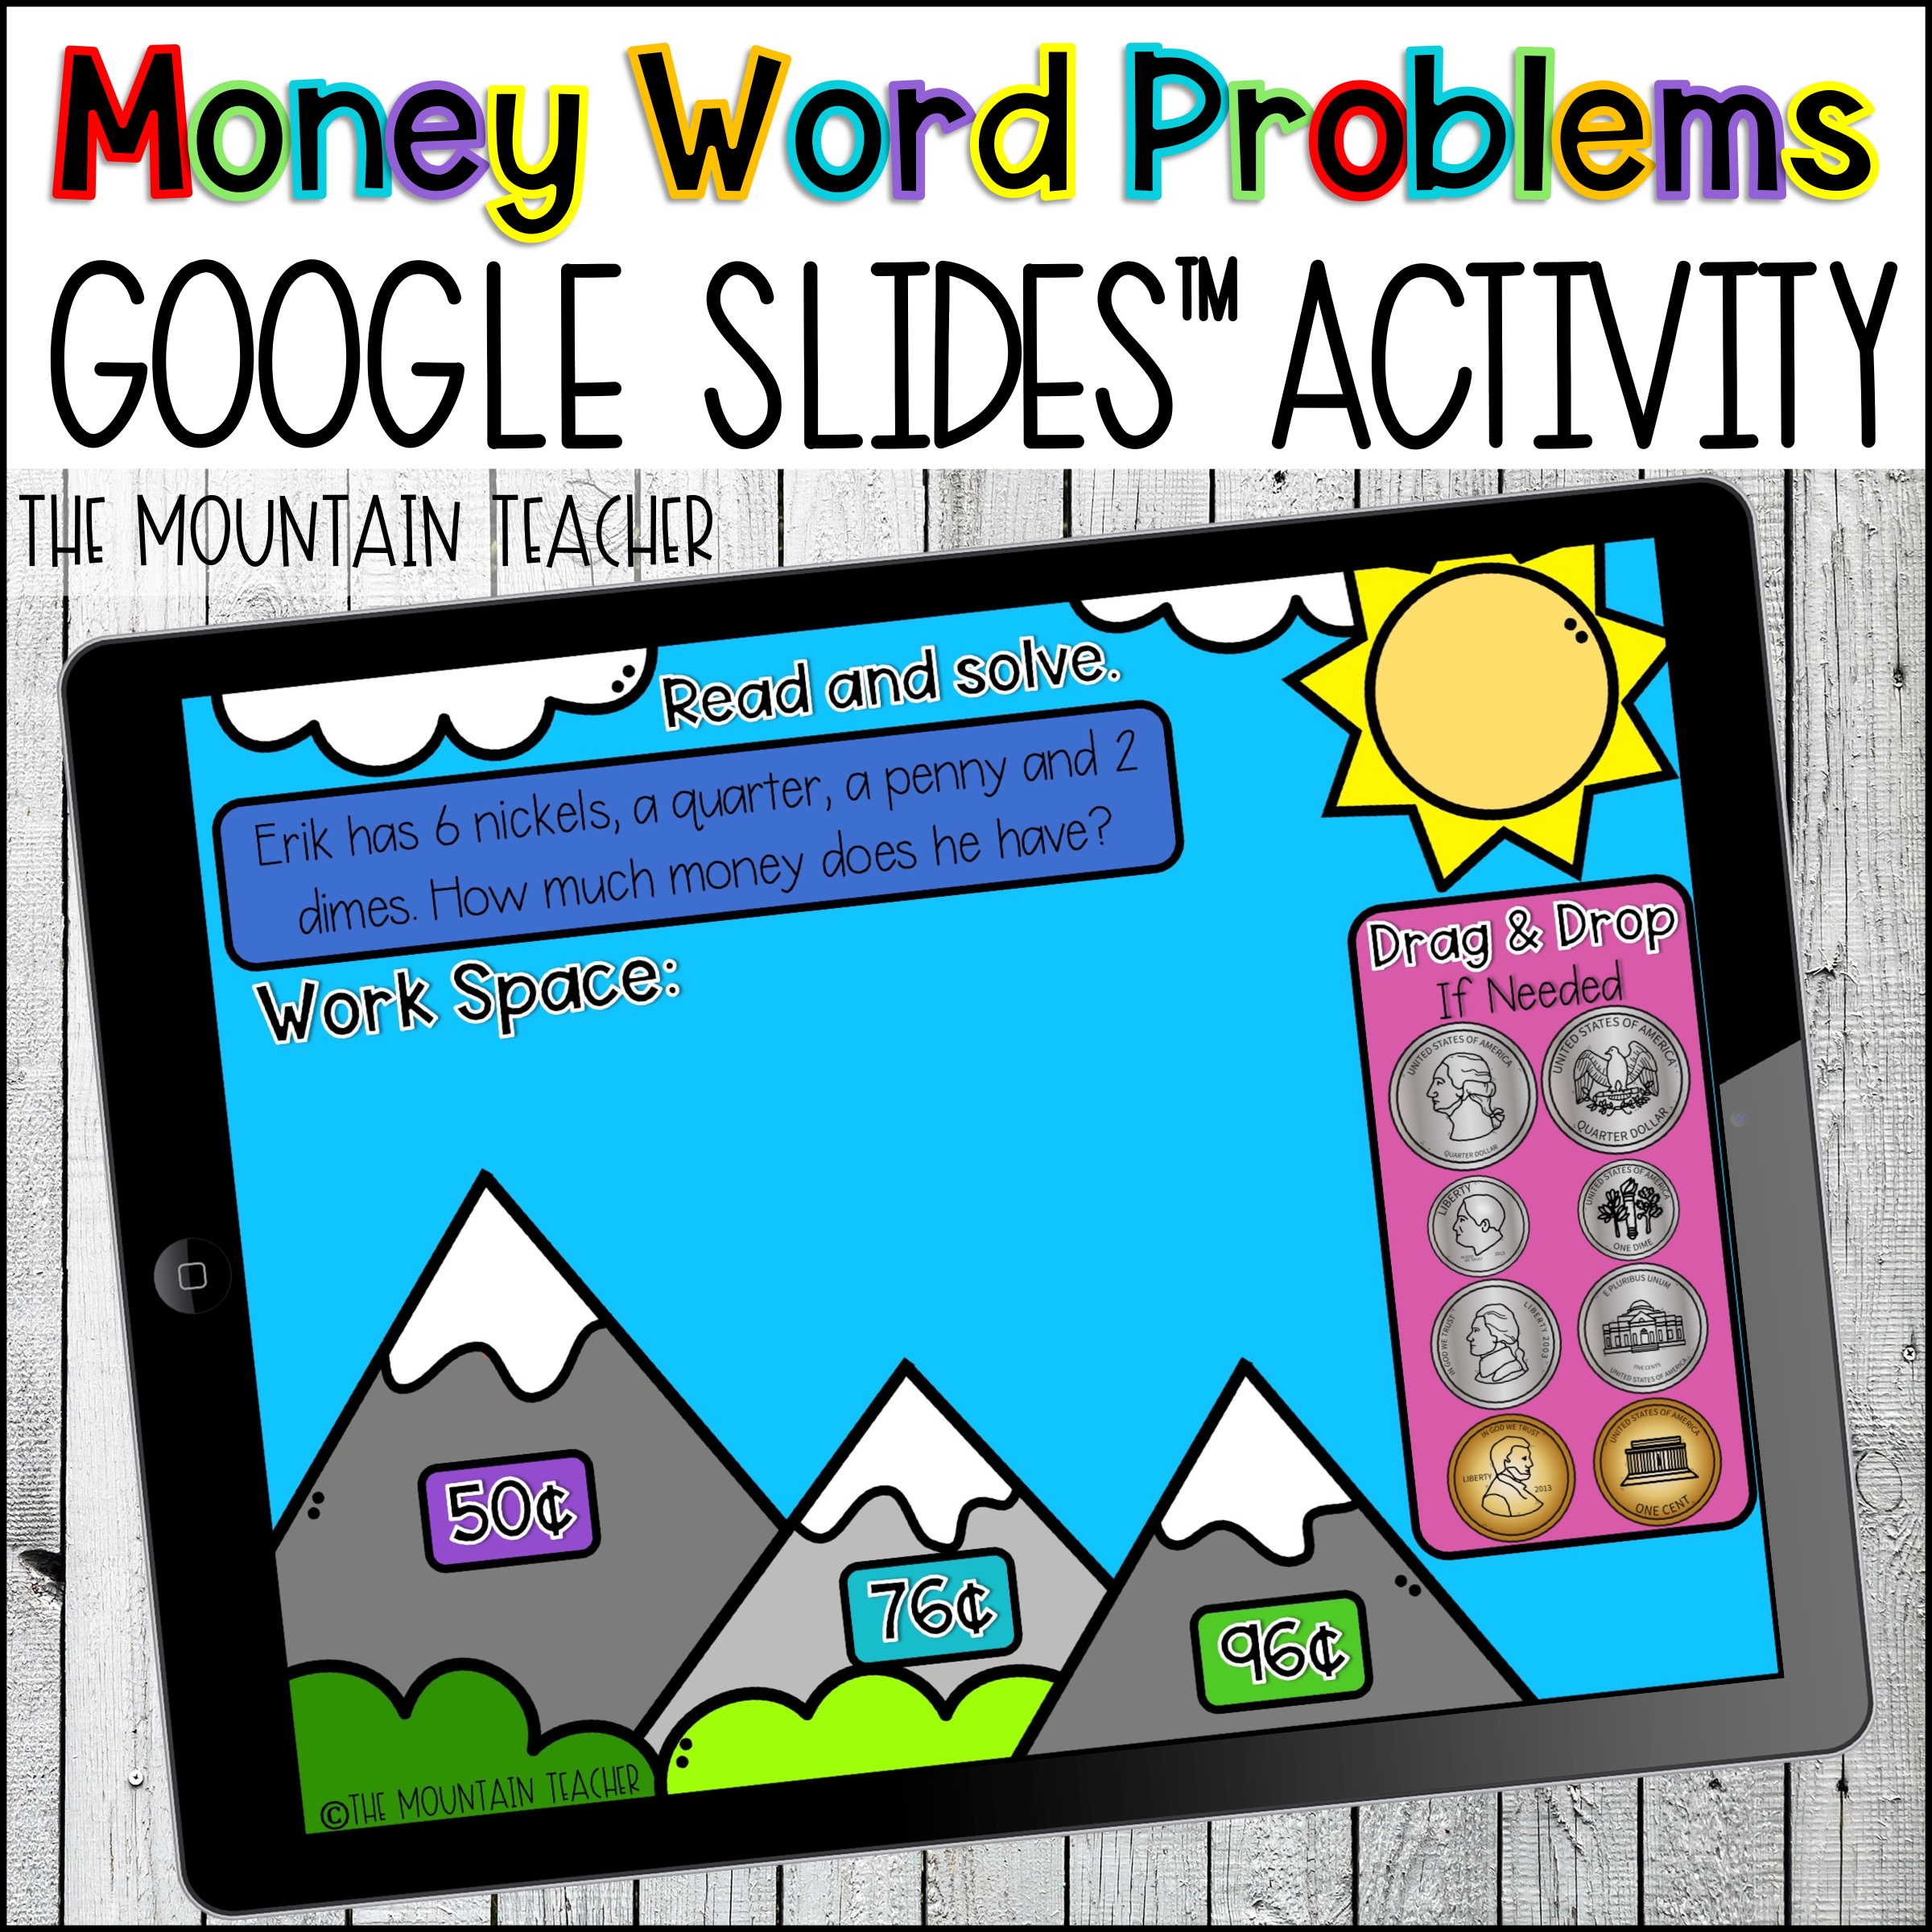 Counting Coins Google Classroom Activity for Slides about Money By The Mountain Teacher